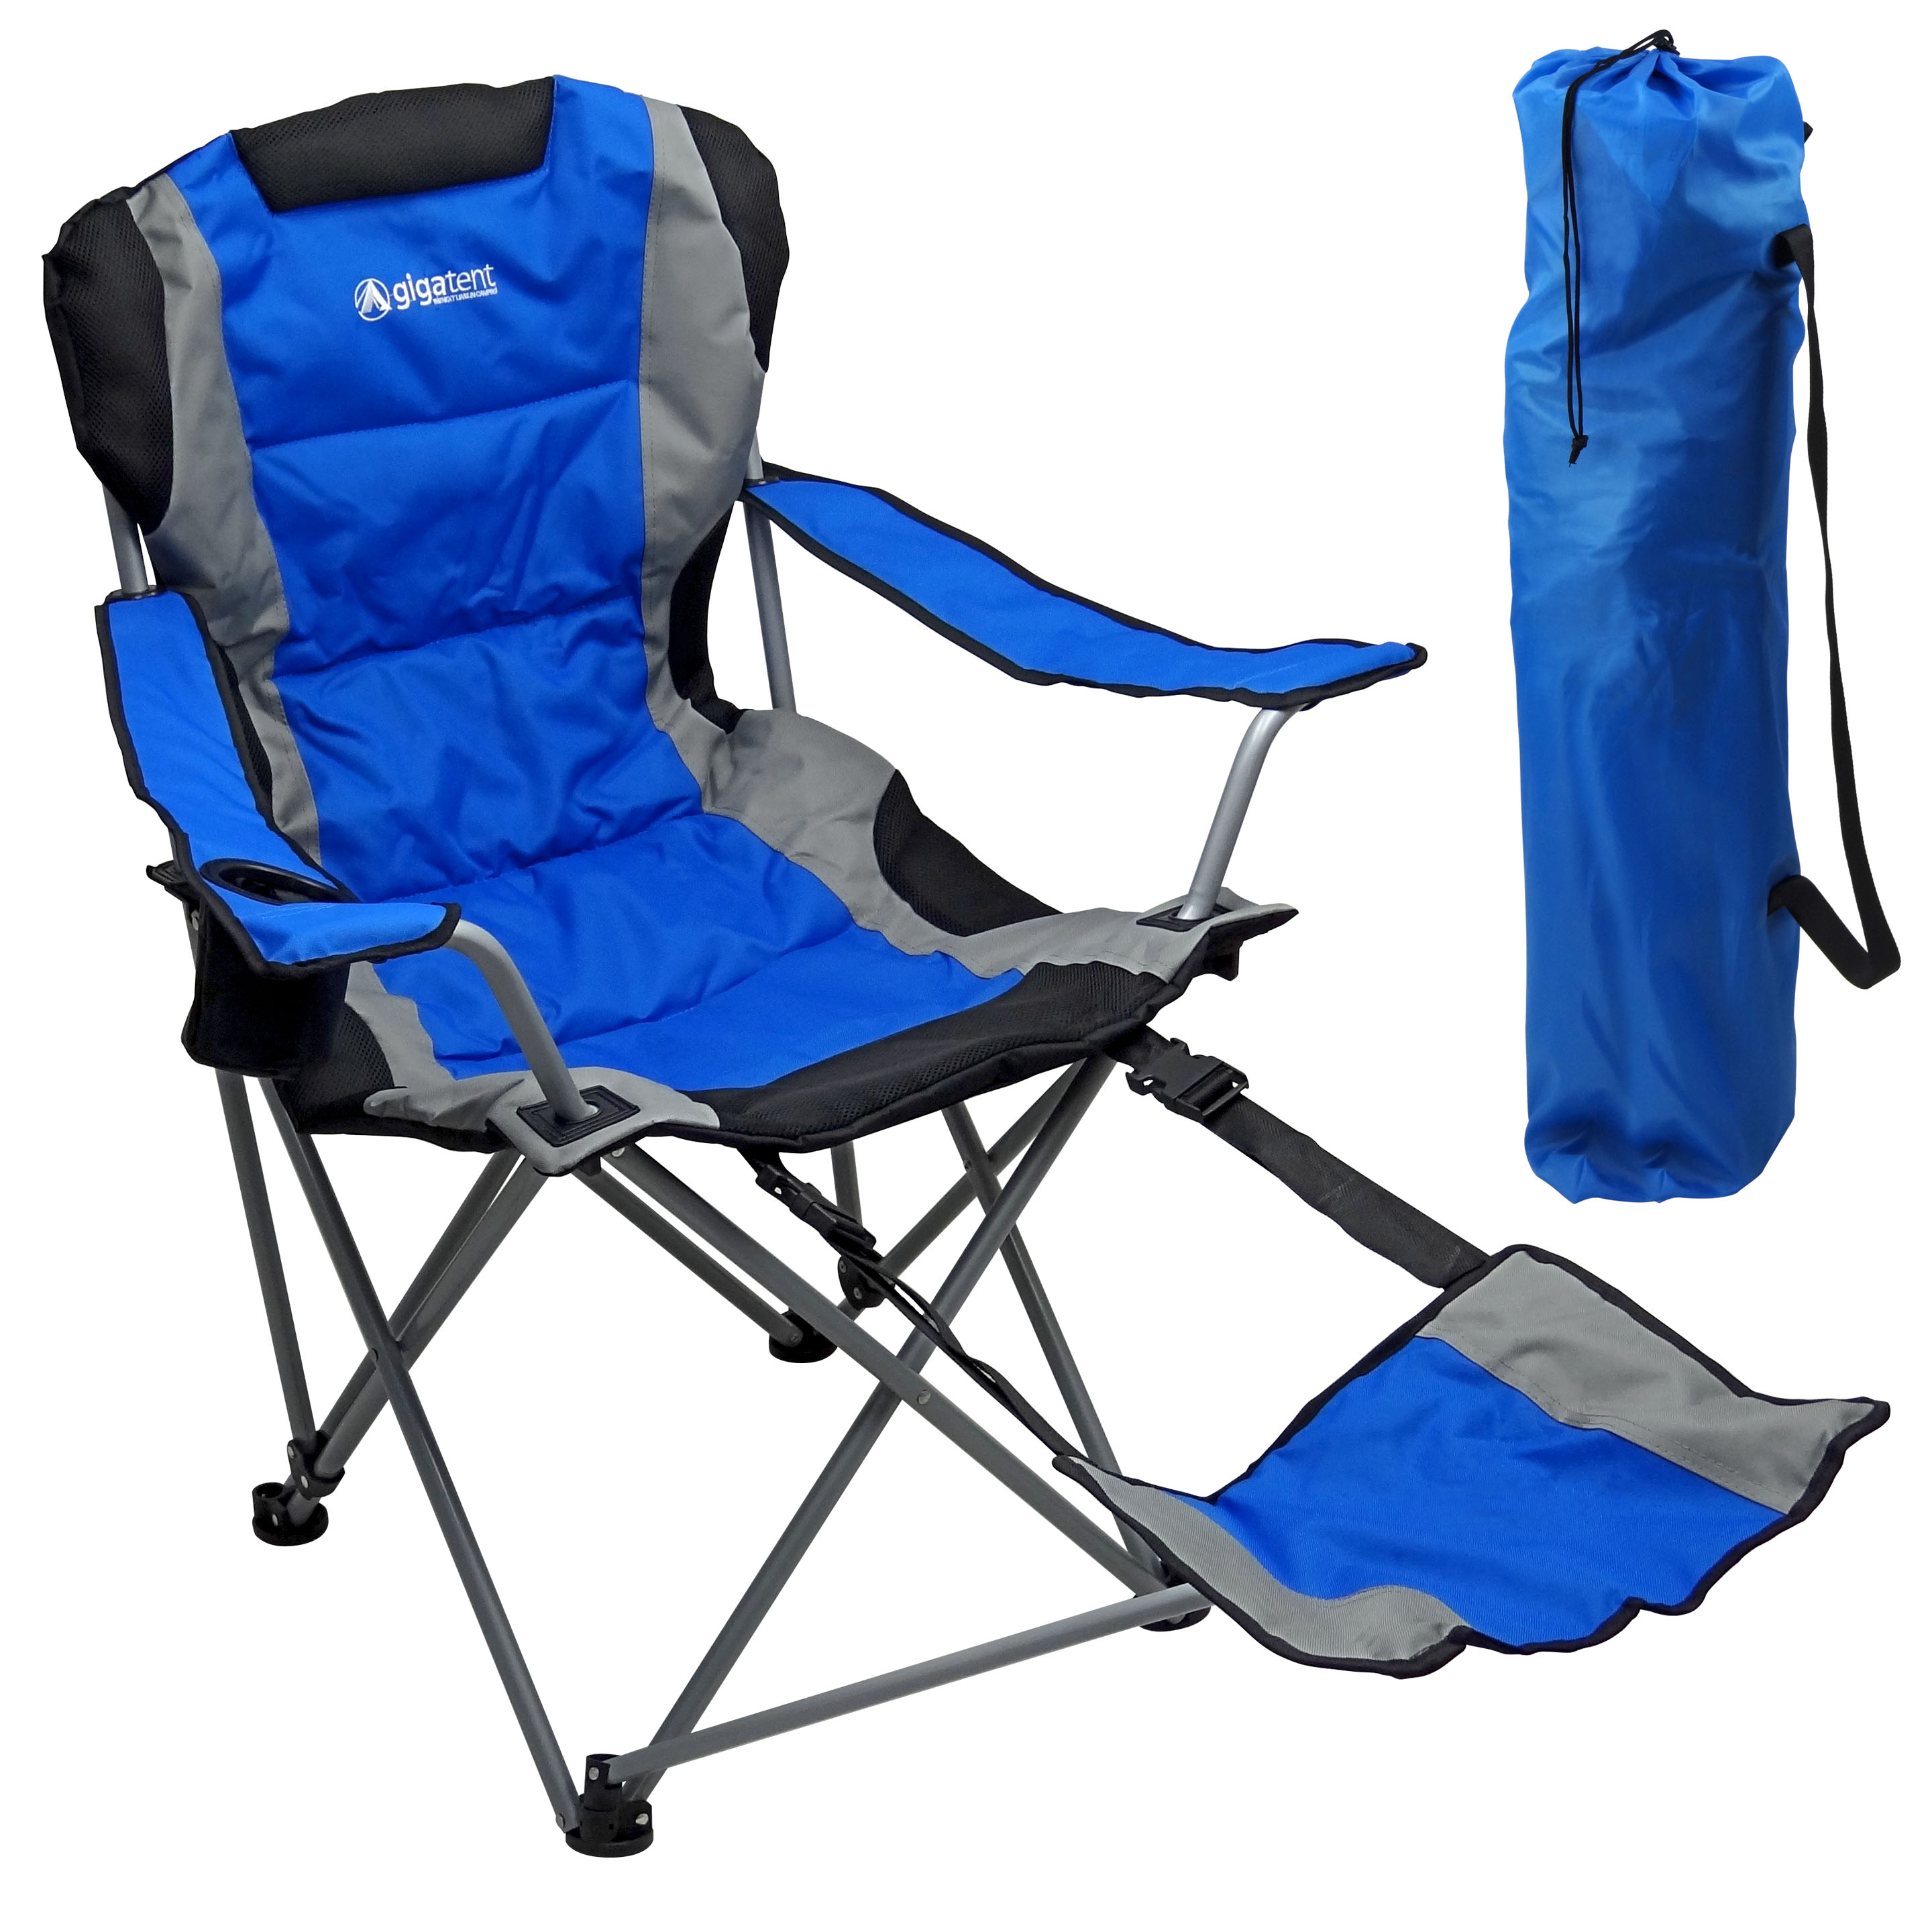 bag chair with footrest exercises tv show camping blue gigatent